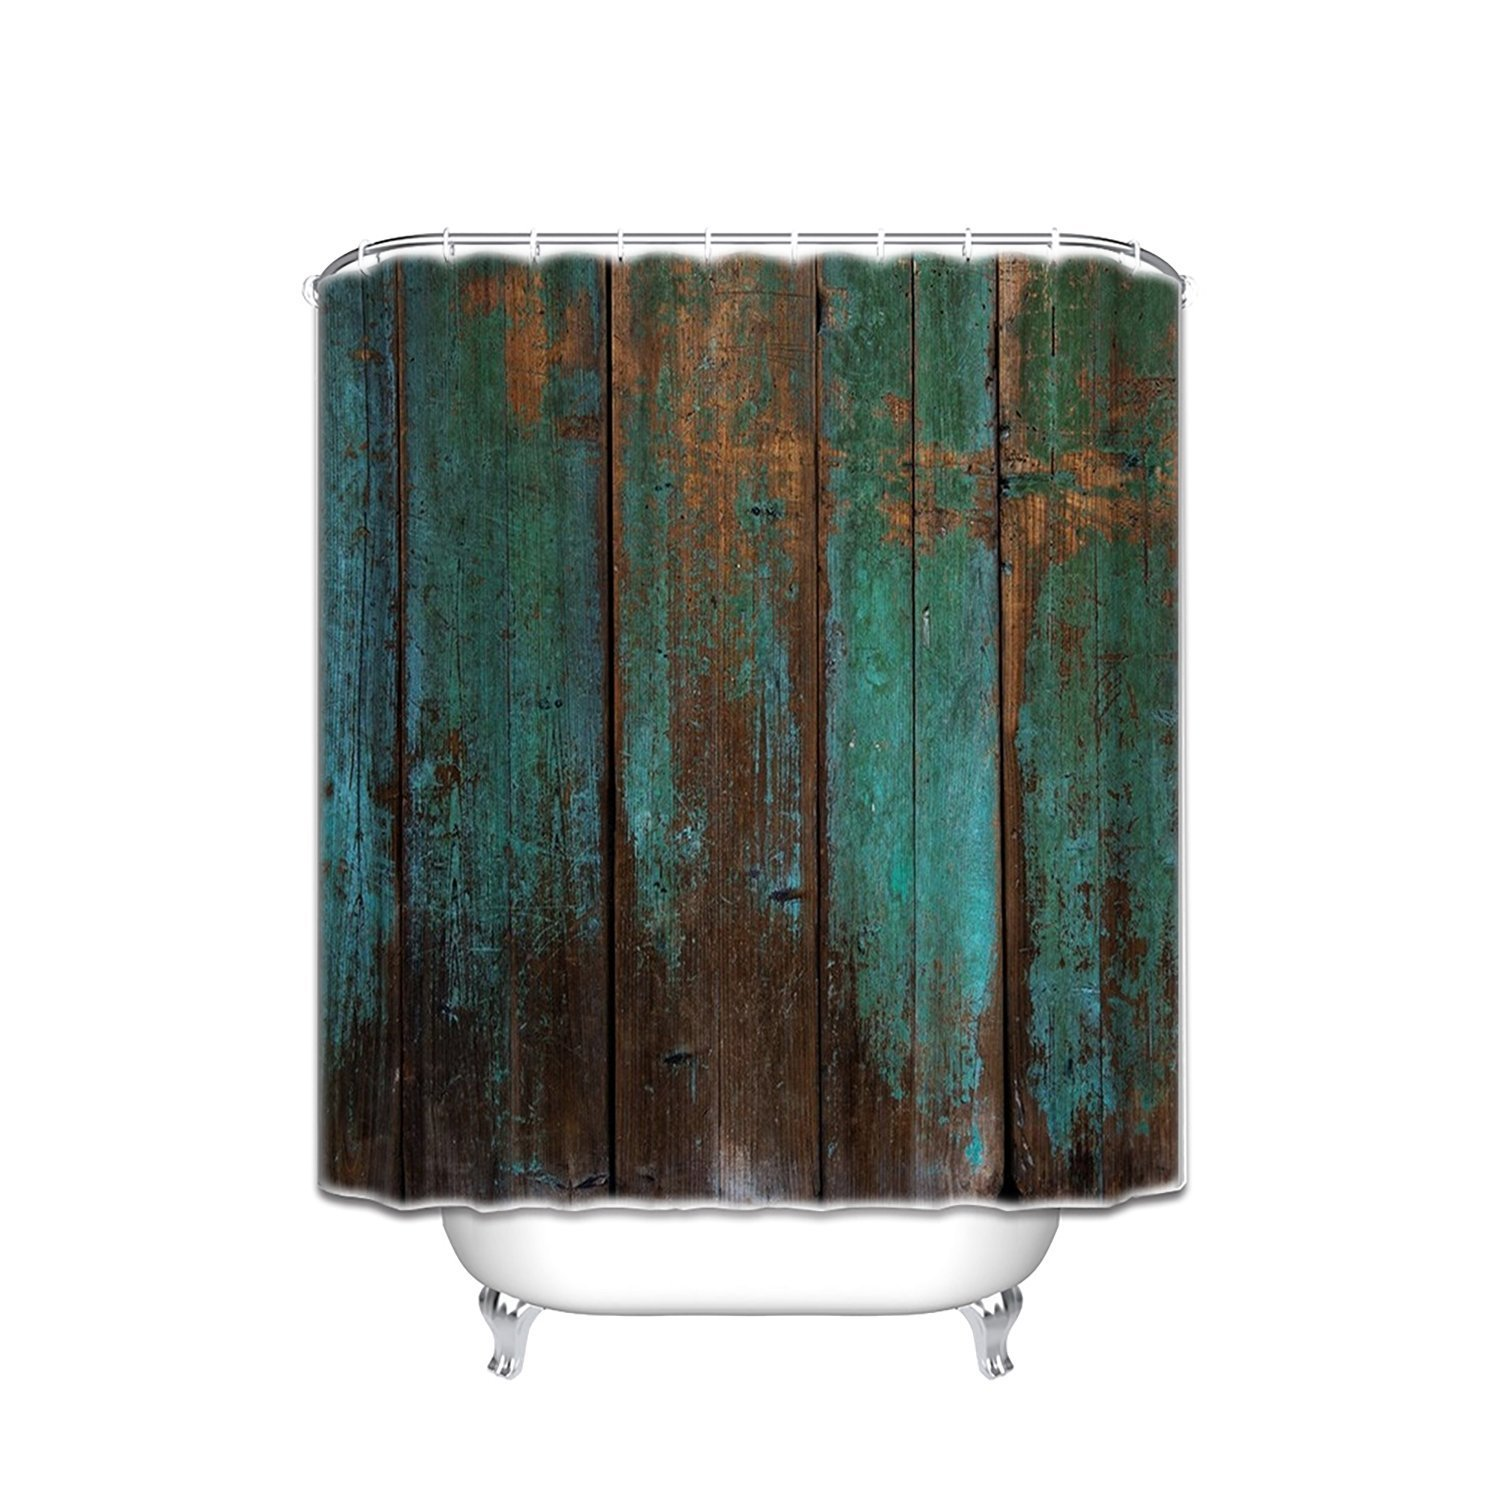 Country Rustic Distressed Teal Green Barn Wood Waterproof Shower Curtain Set,Bathroom Decor Hooks are Included 48x72 Inches